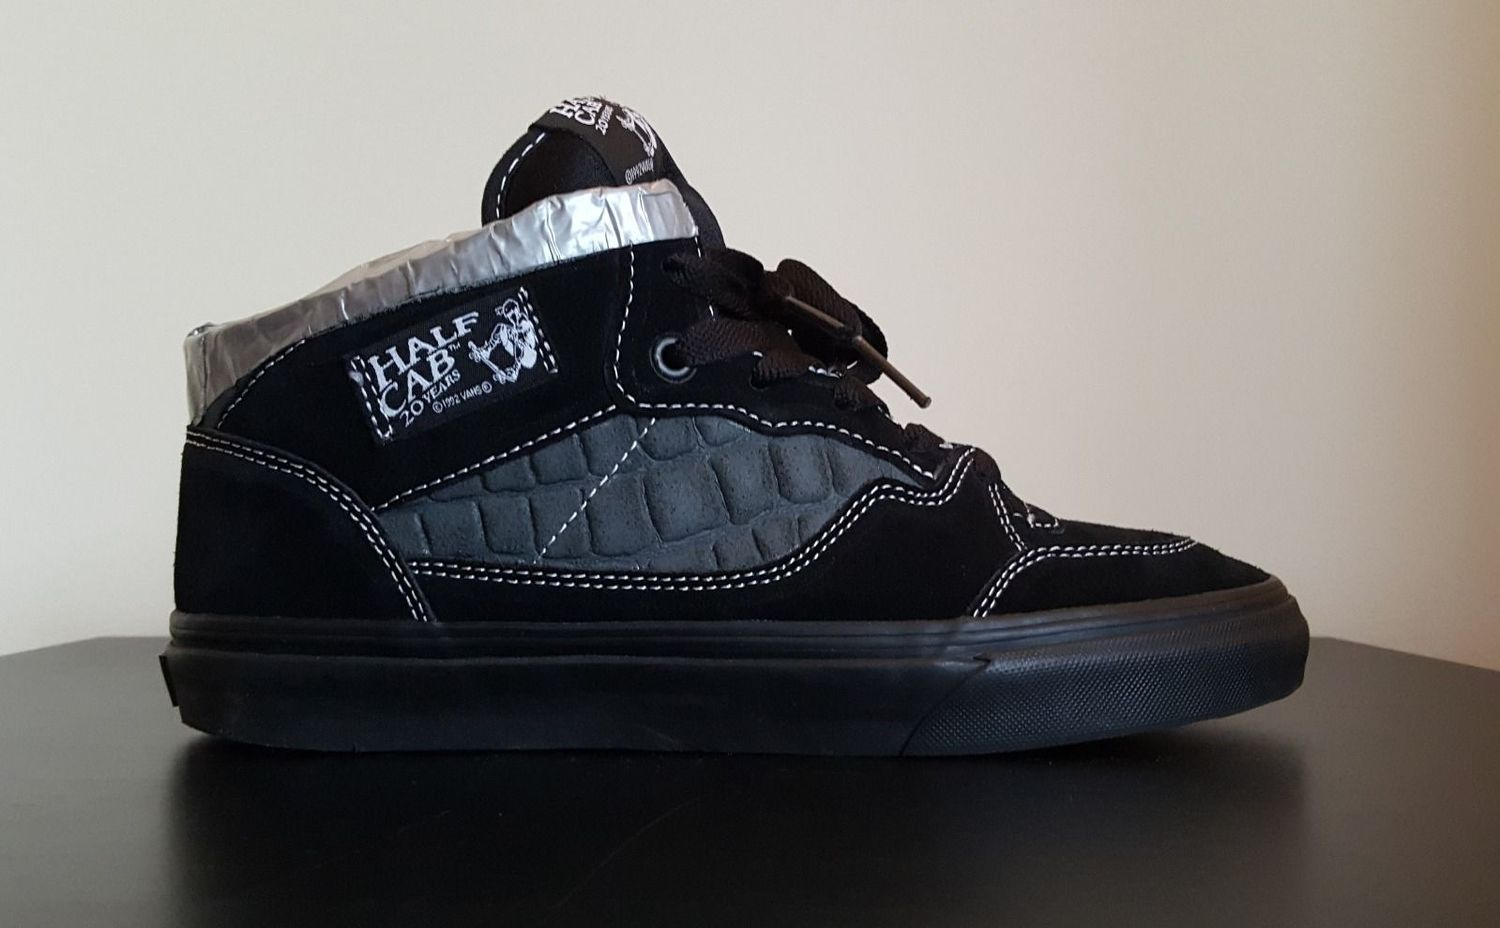 a82fdff69e Very Rare Pair of 20th Anniversary Half Cab on eBay — strictly waffles.